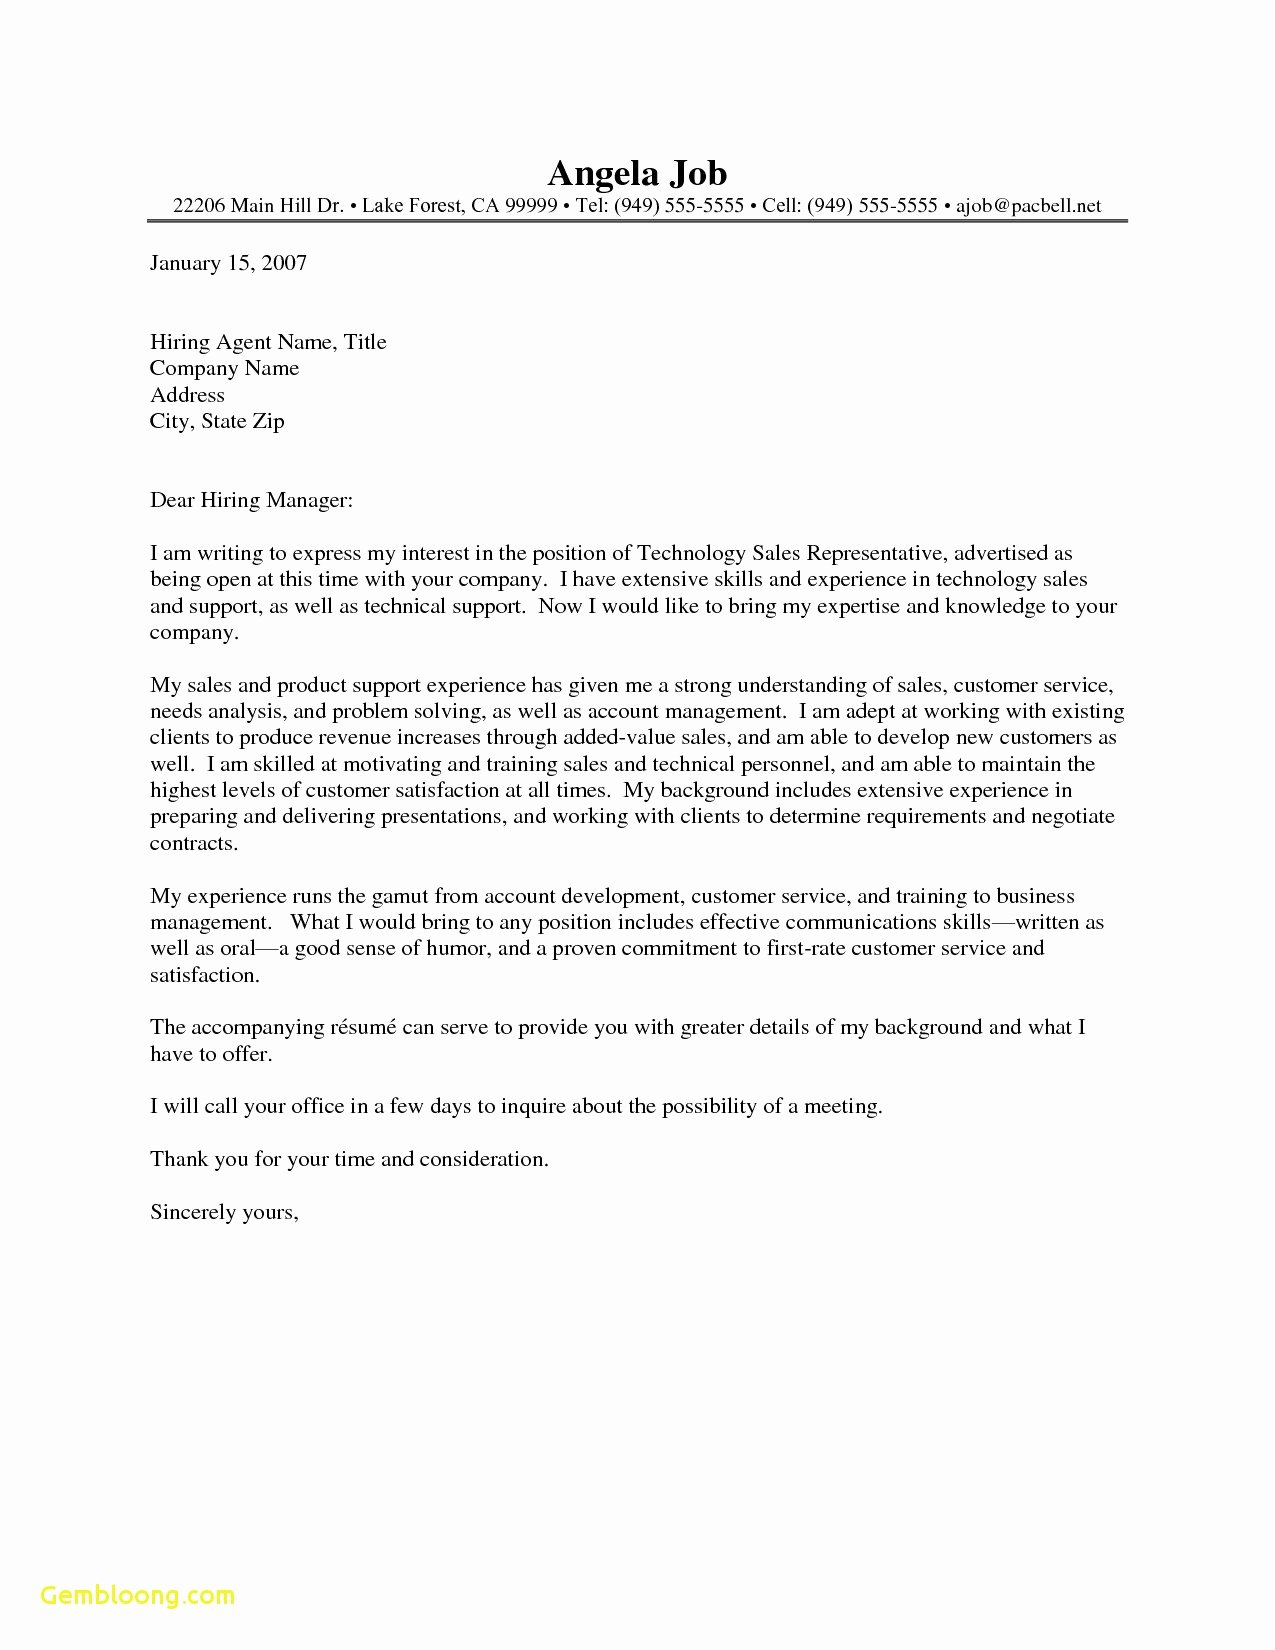 Cover Letter for Substitute Teacher Lovely 14 Teacher Cover Letter